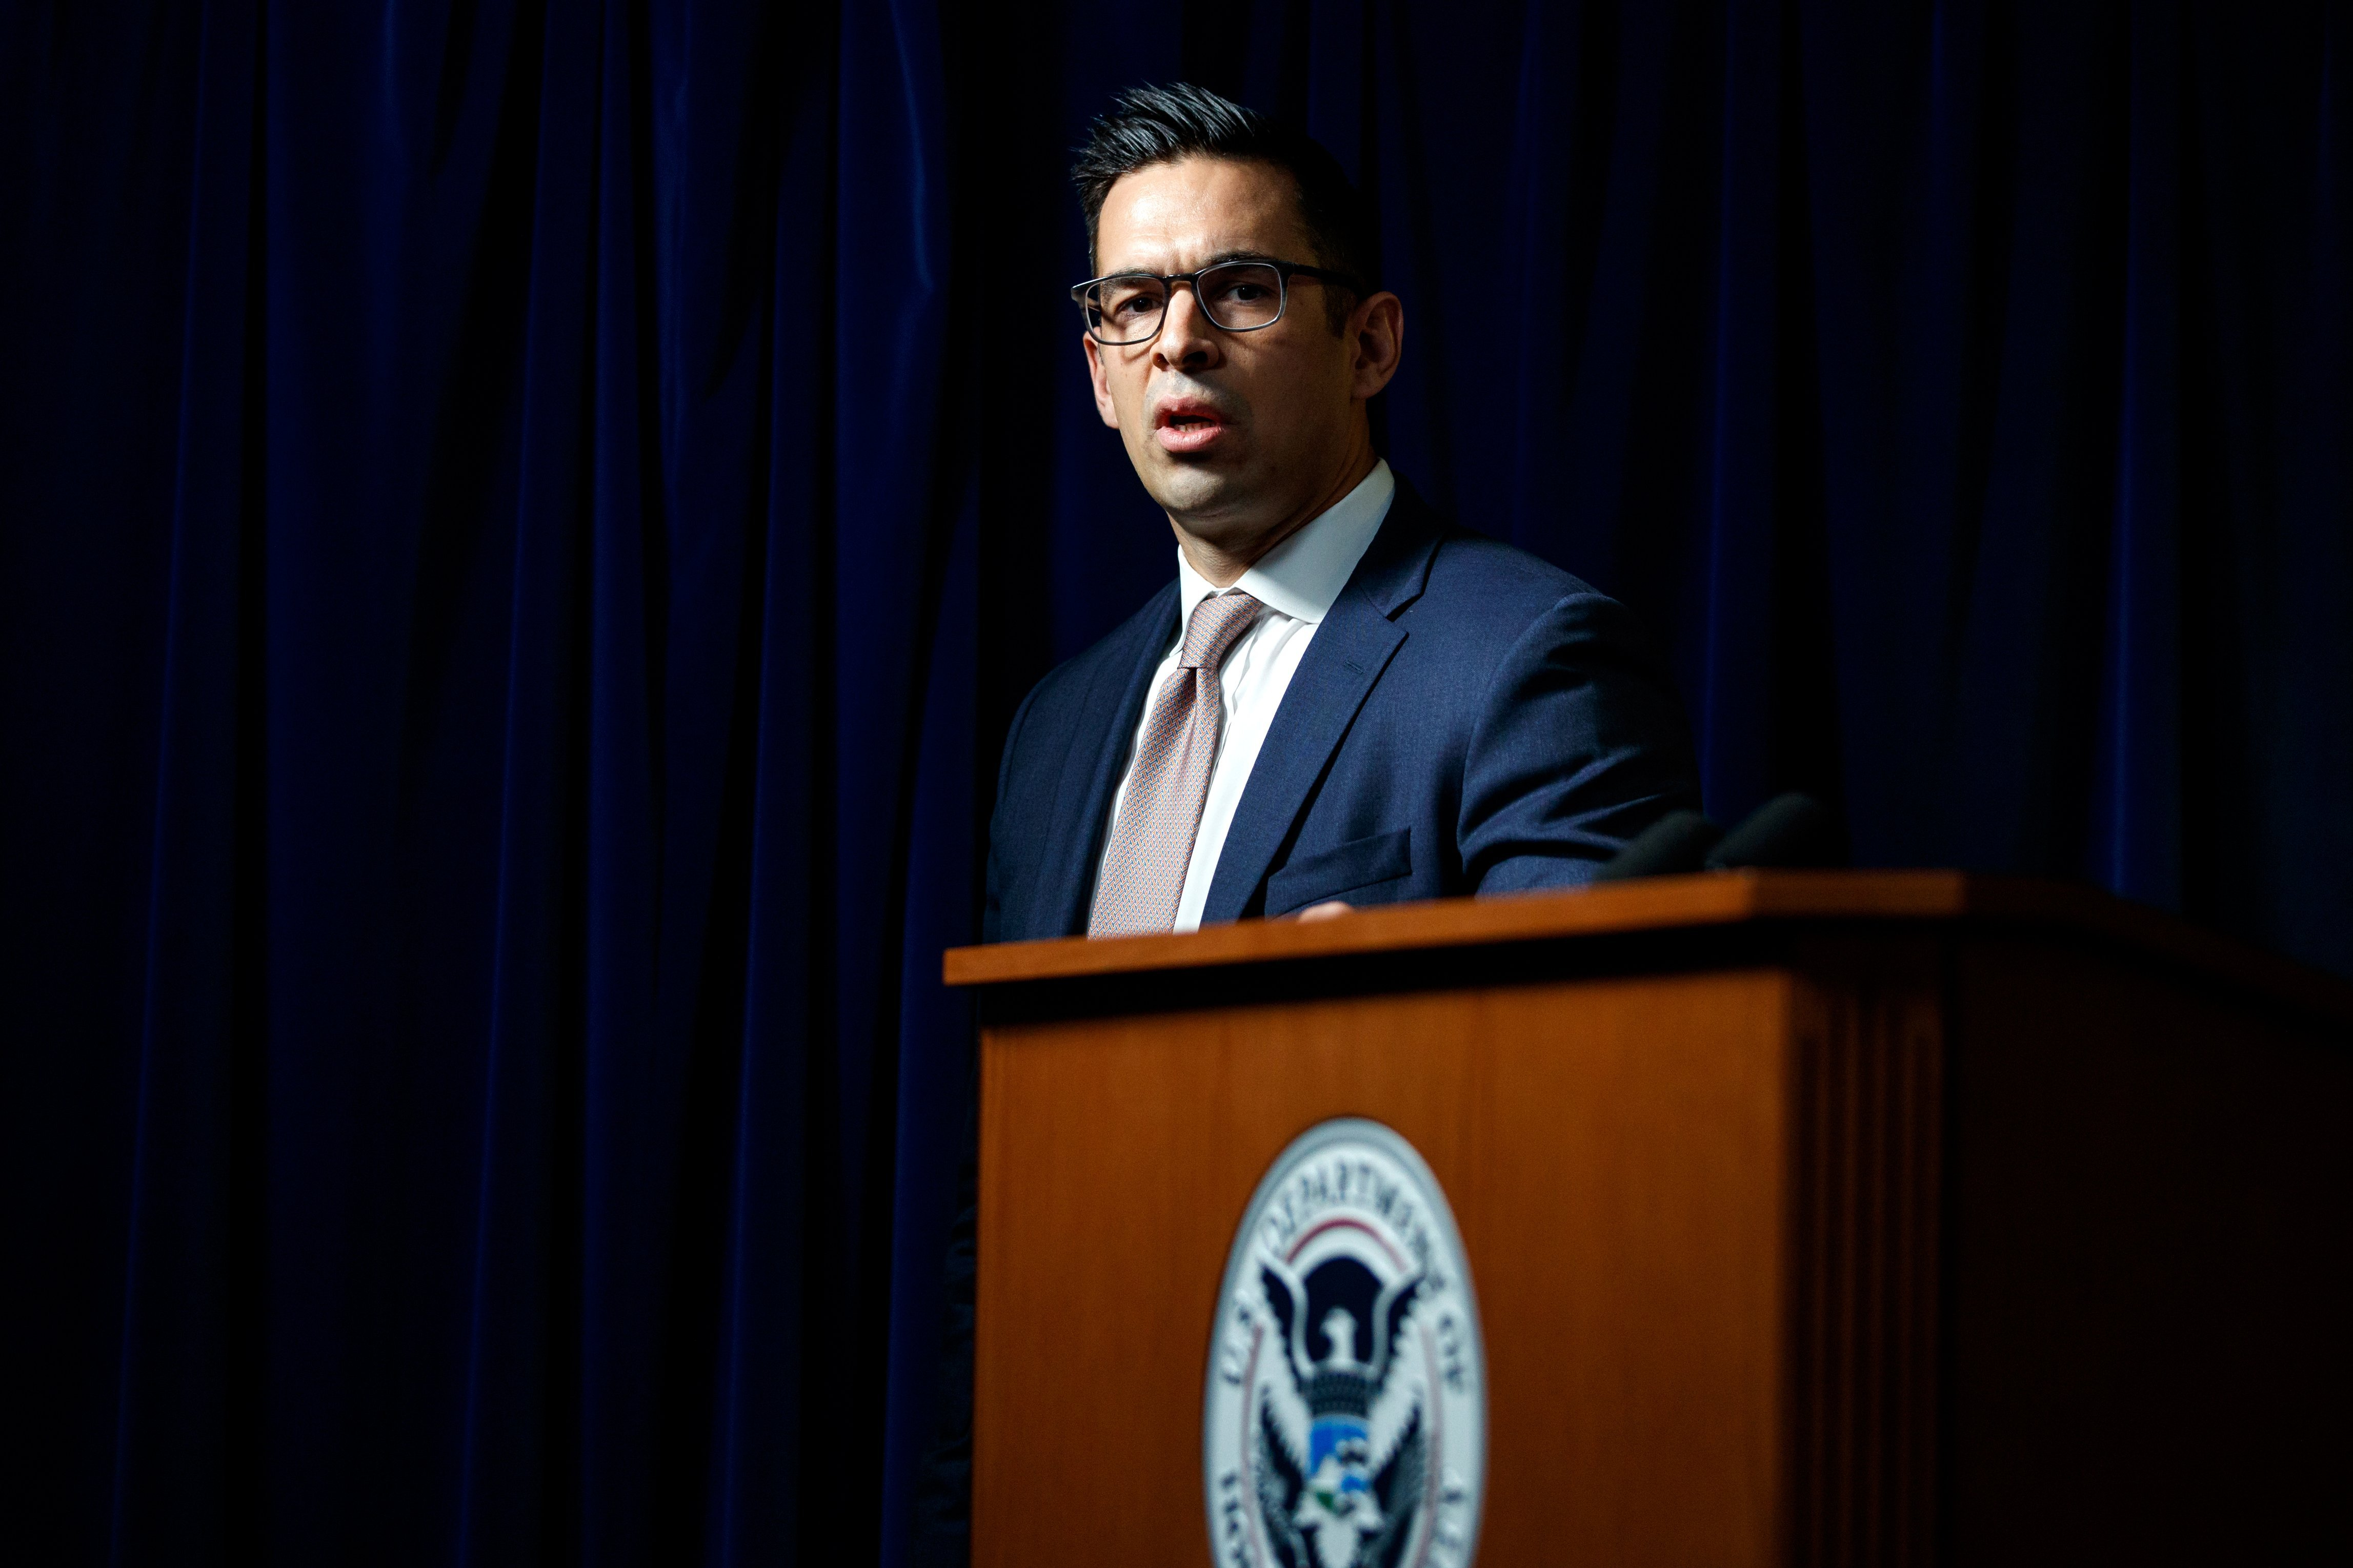 Senior DHS official exits amid department leadership changes